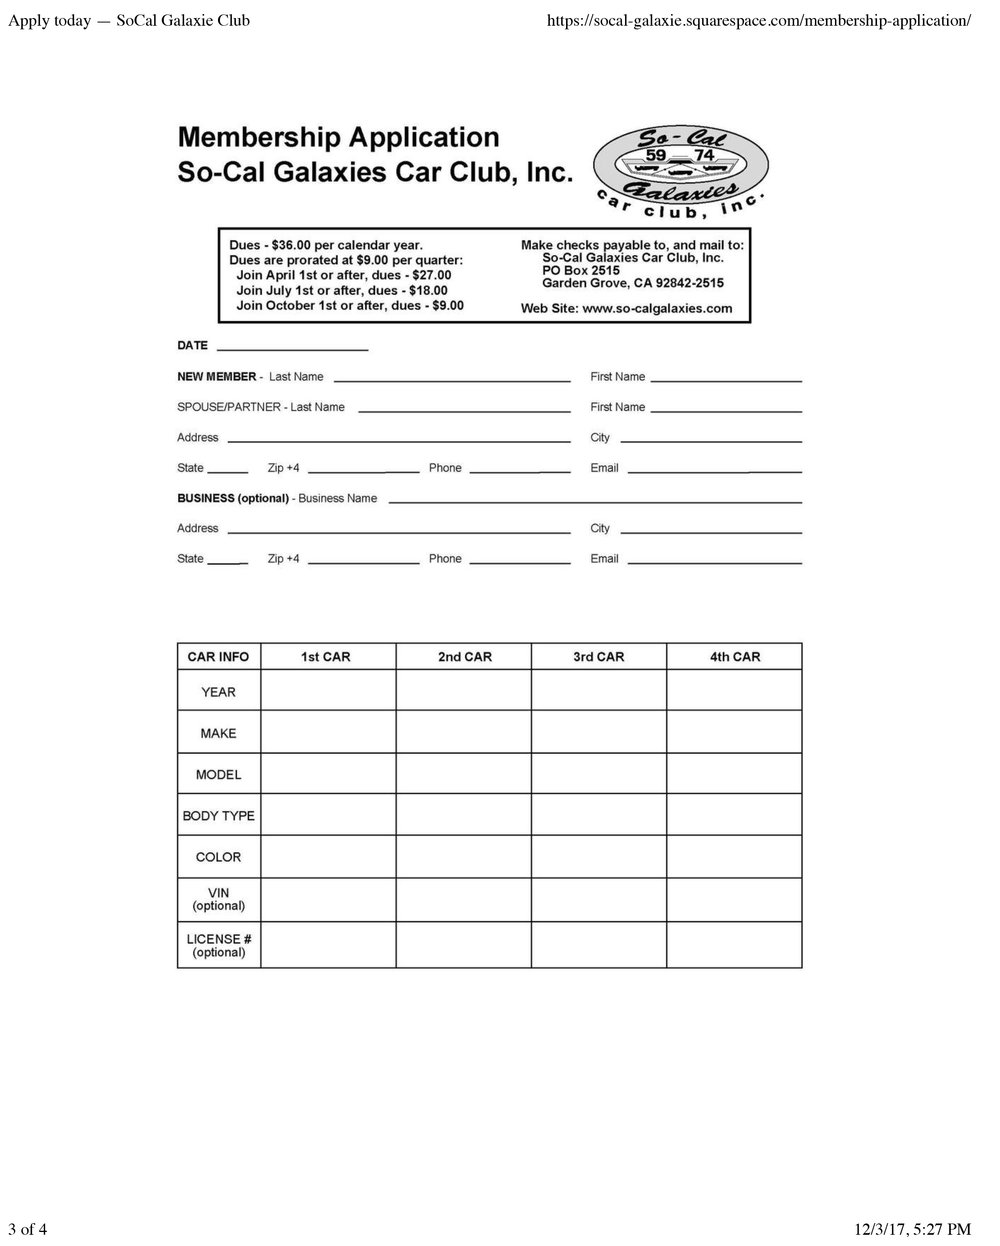 Apply today — SoCal Galaxie Club-3.jpg